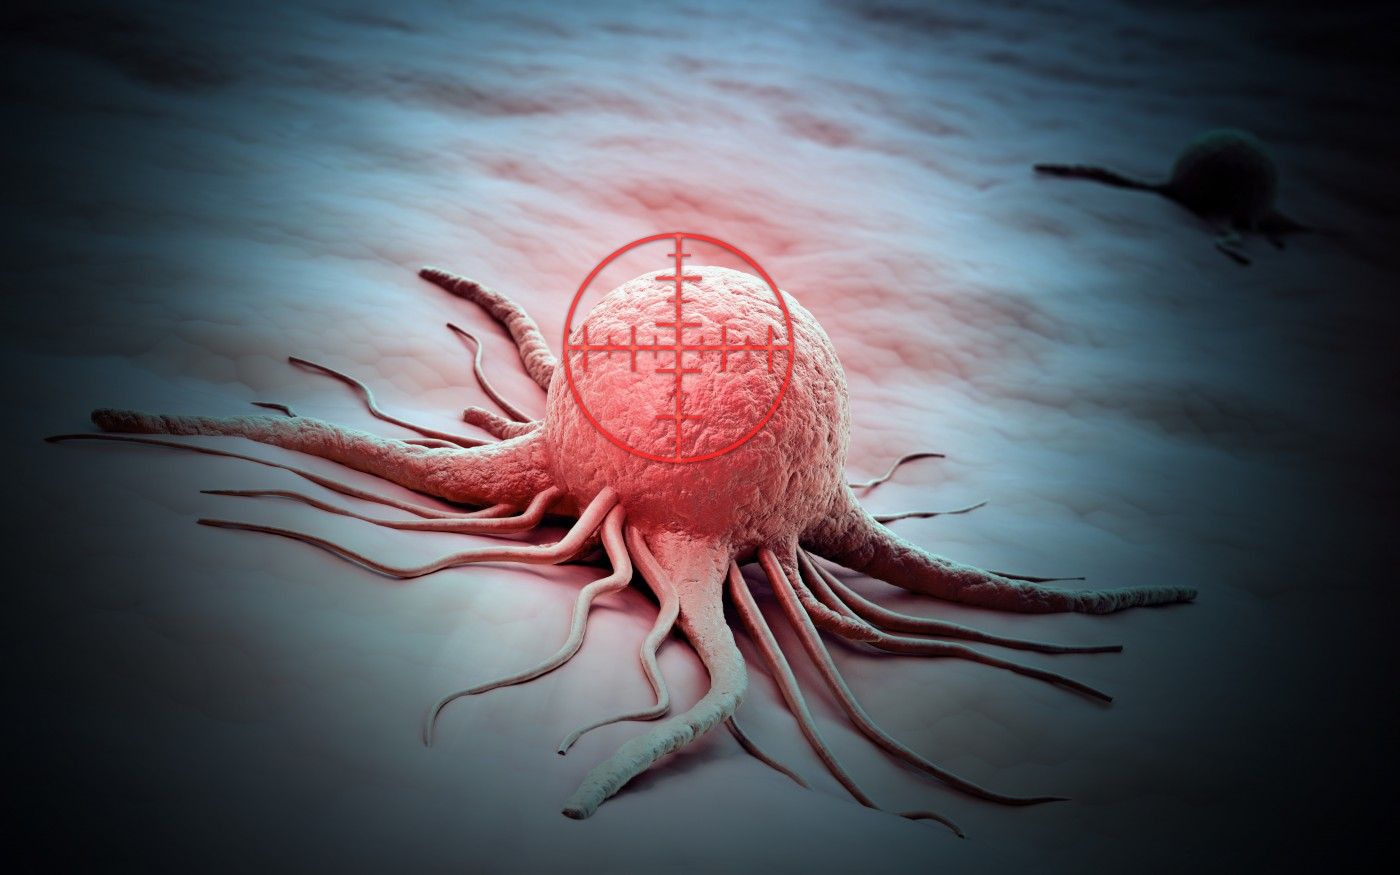 Triple Negative Breast Cancer Novel Immunotherapy Approach Developed